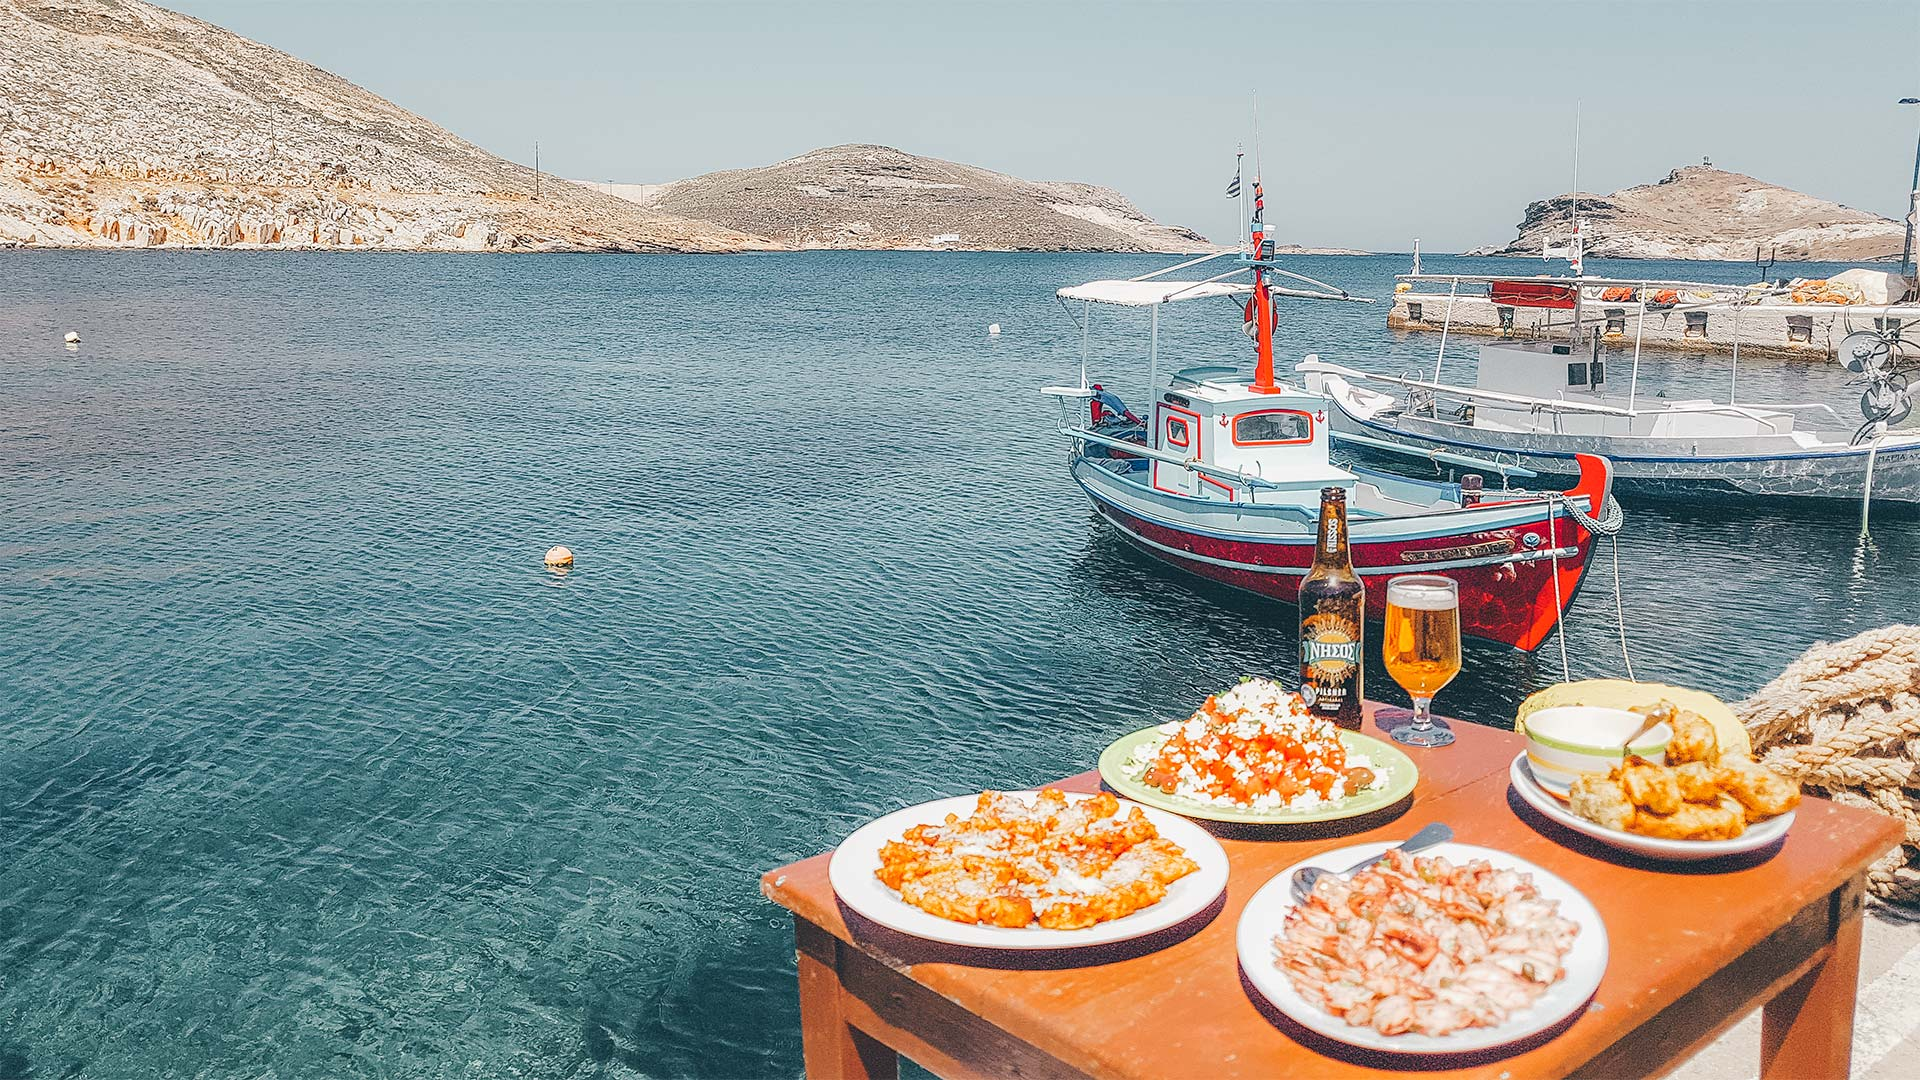 The seaside settlement of Panormos has plenty of idylic fish tavernas